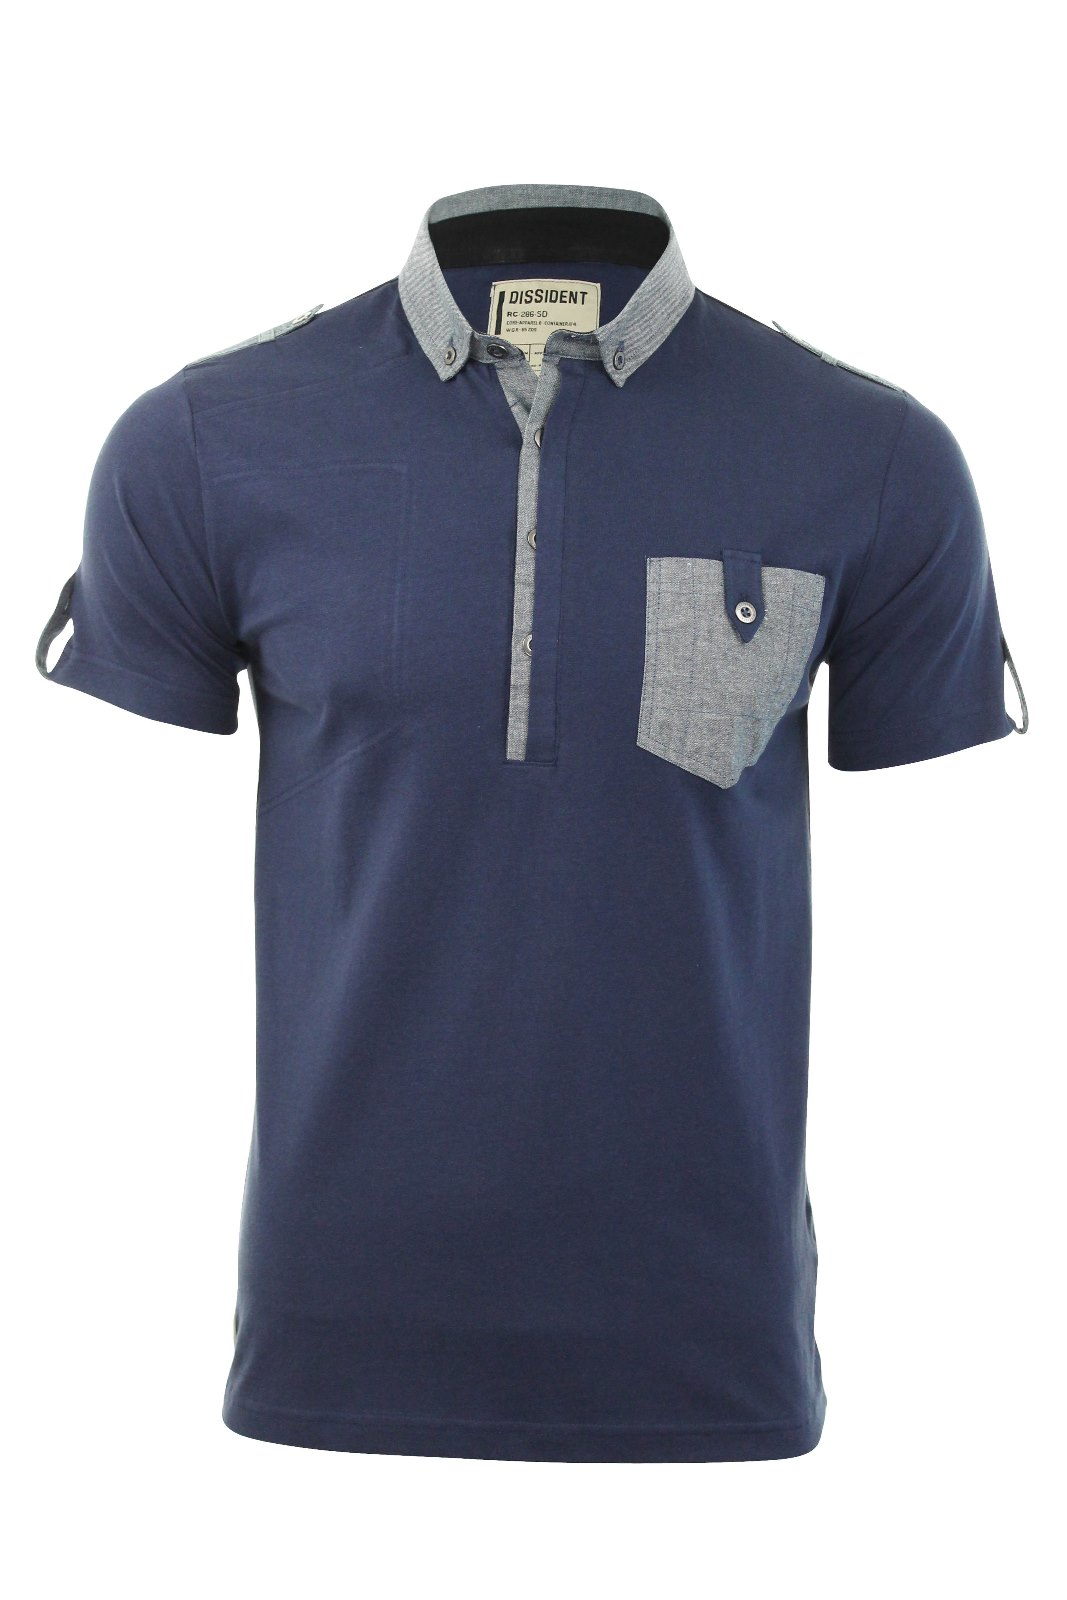 Mens Dissident Polo T Shirt 39 Zoo 1 39 Short Sleeved Chambray